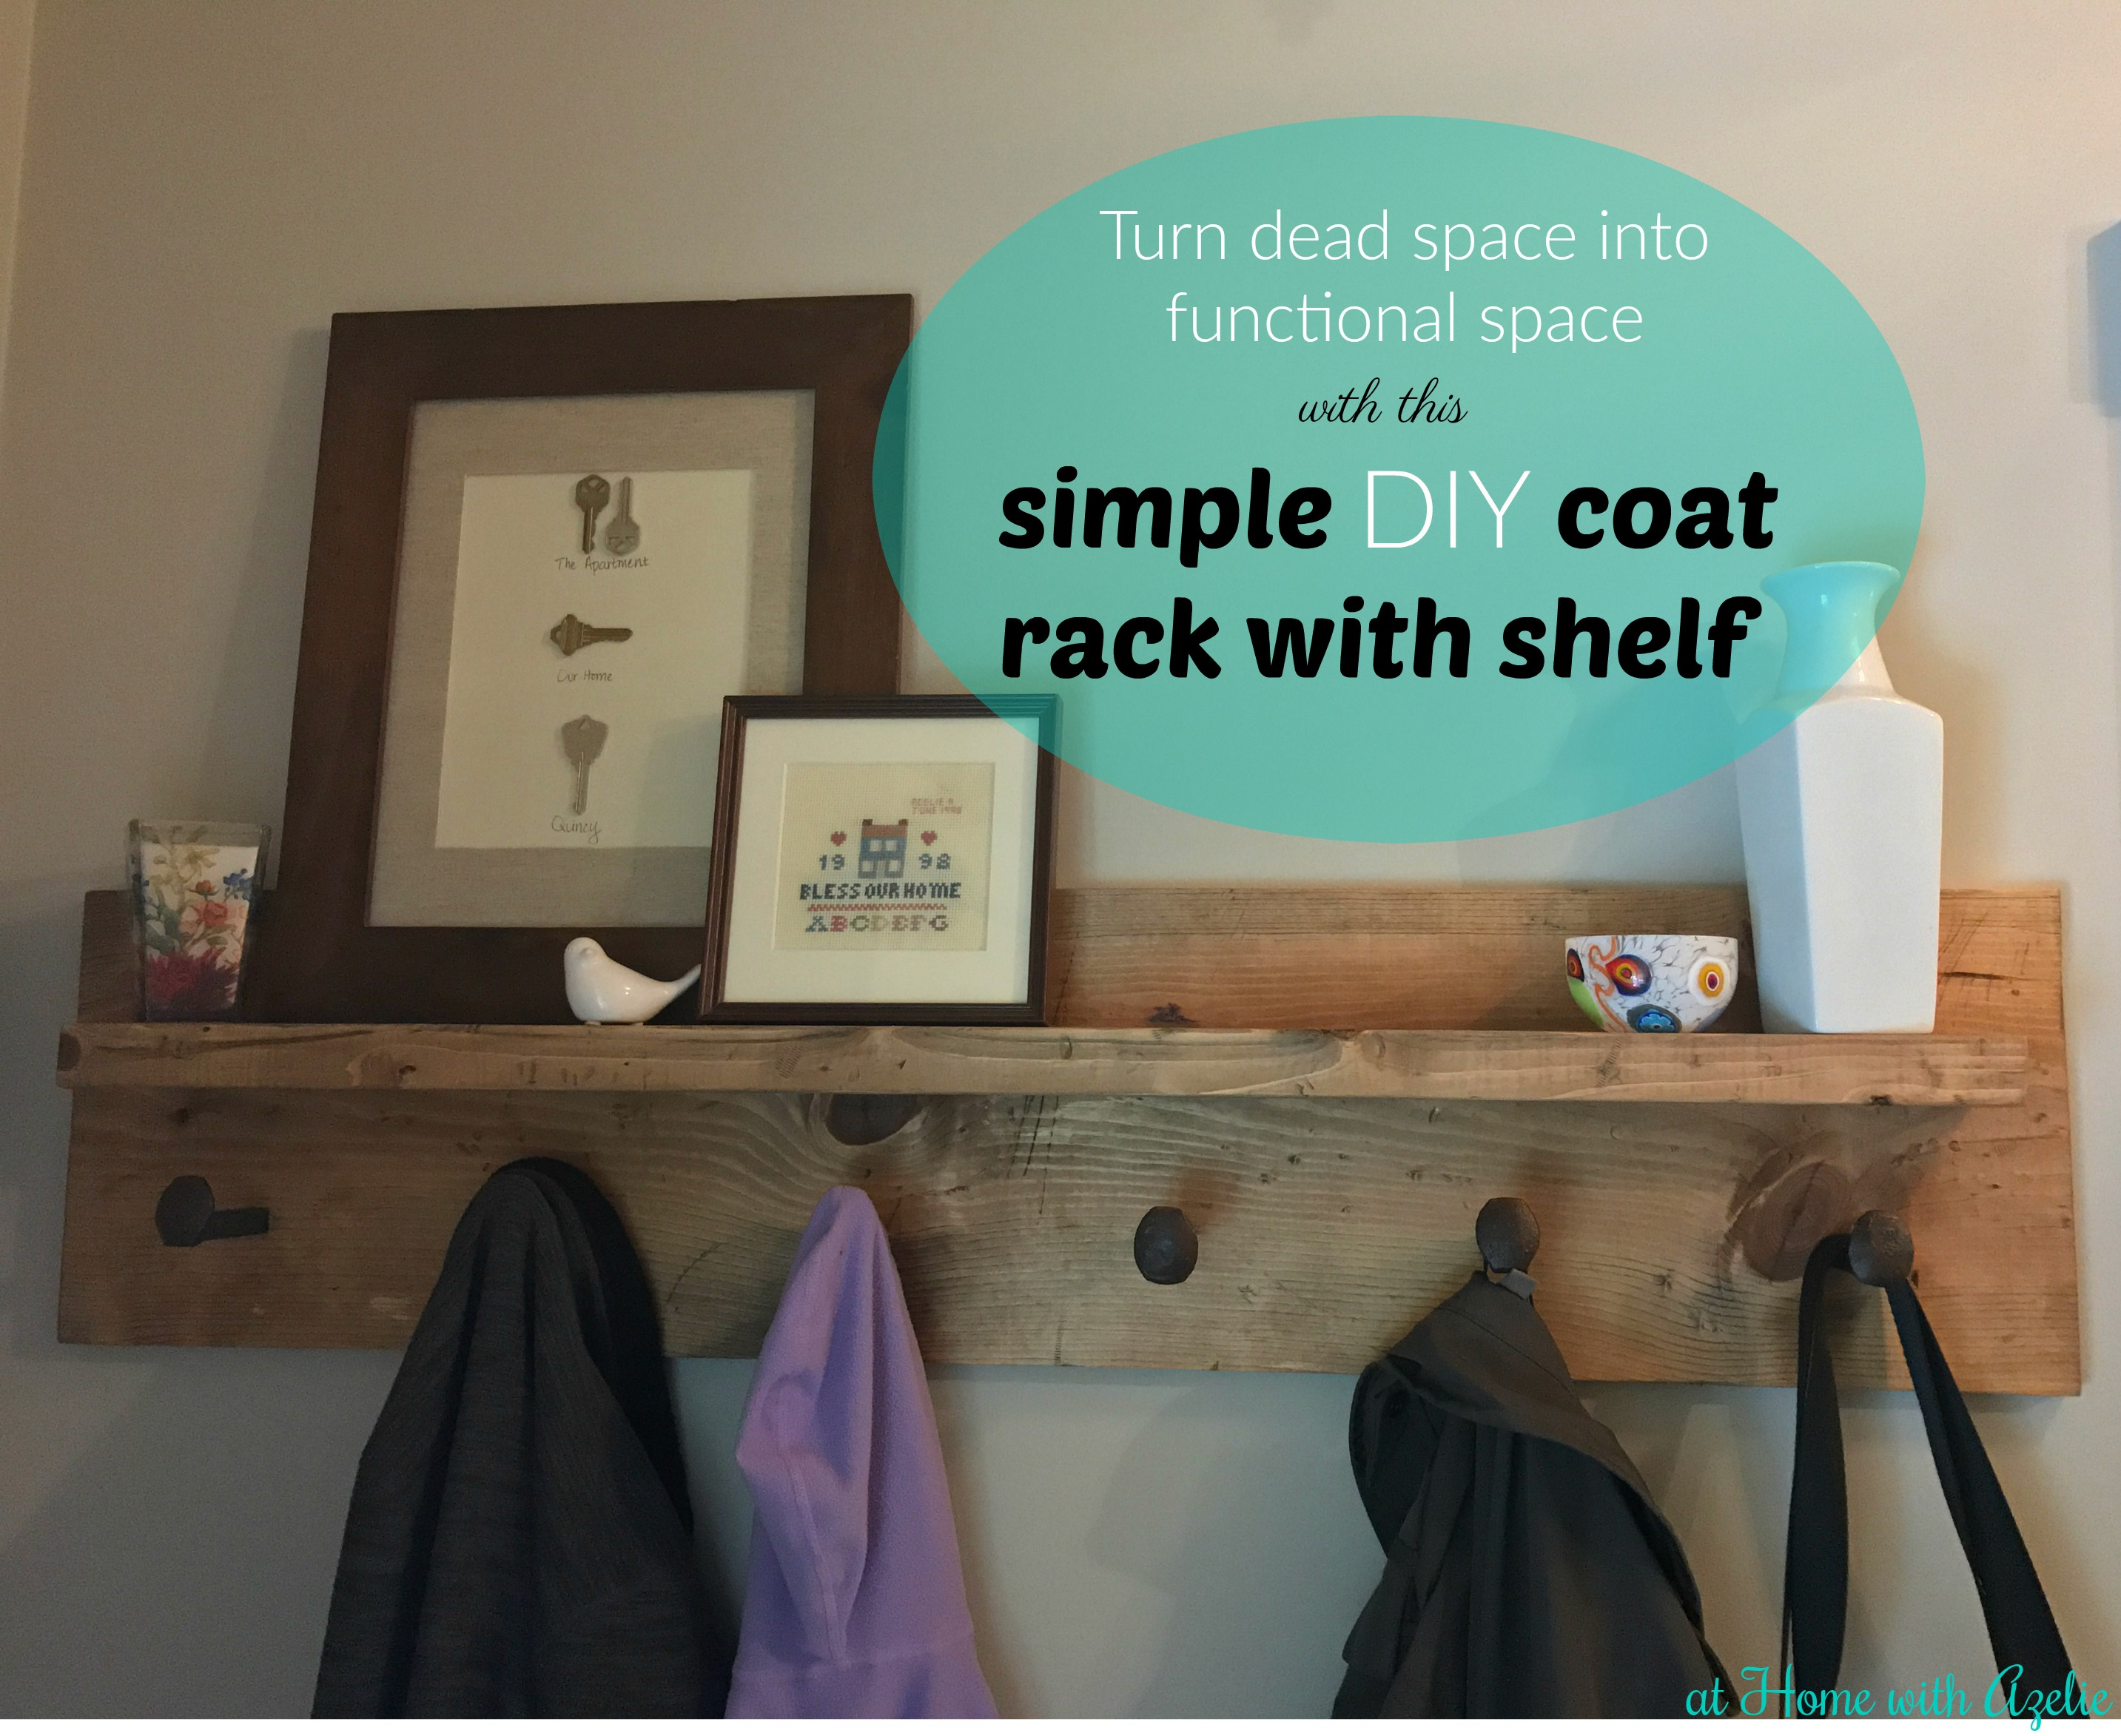 cozycreekwoodworking key mount with pin rack shelf holder coat by wall mail entryway organizer mudroom and